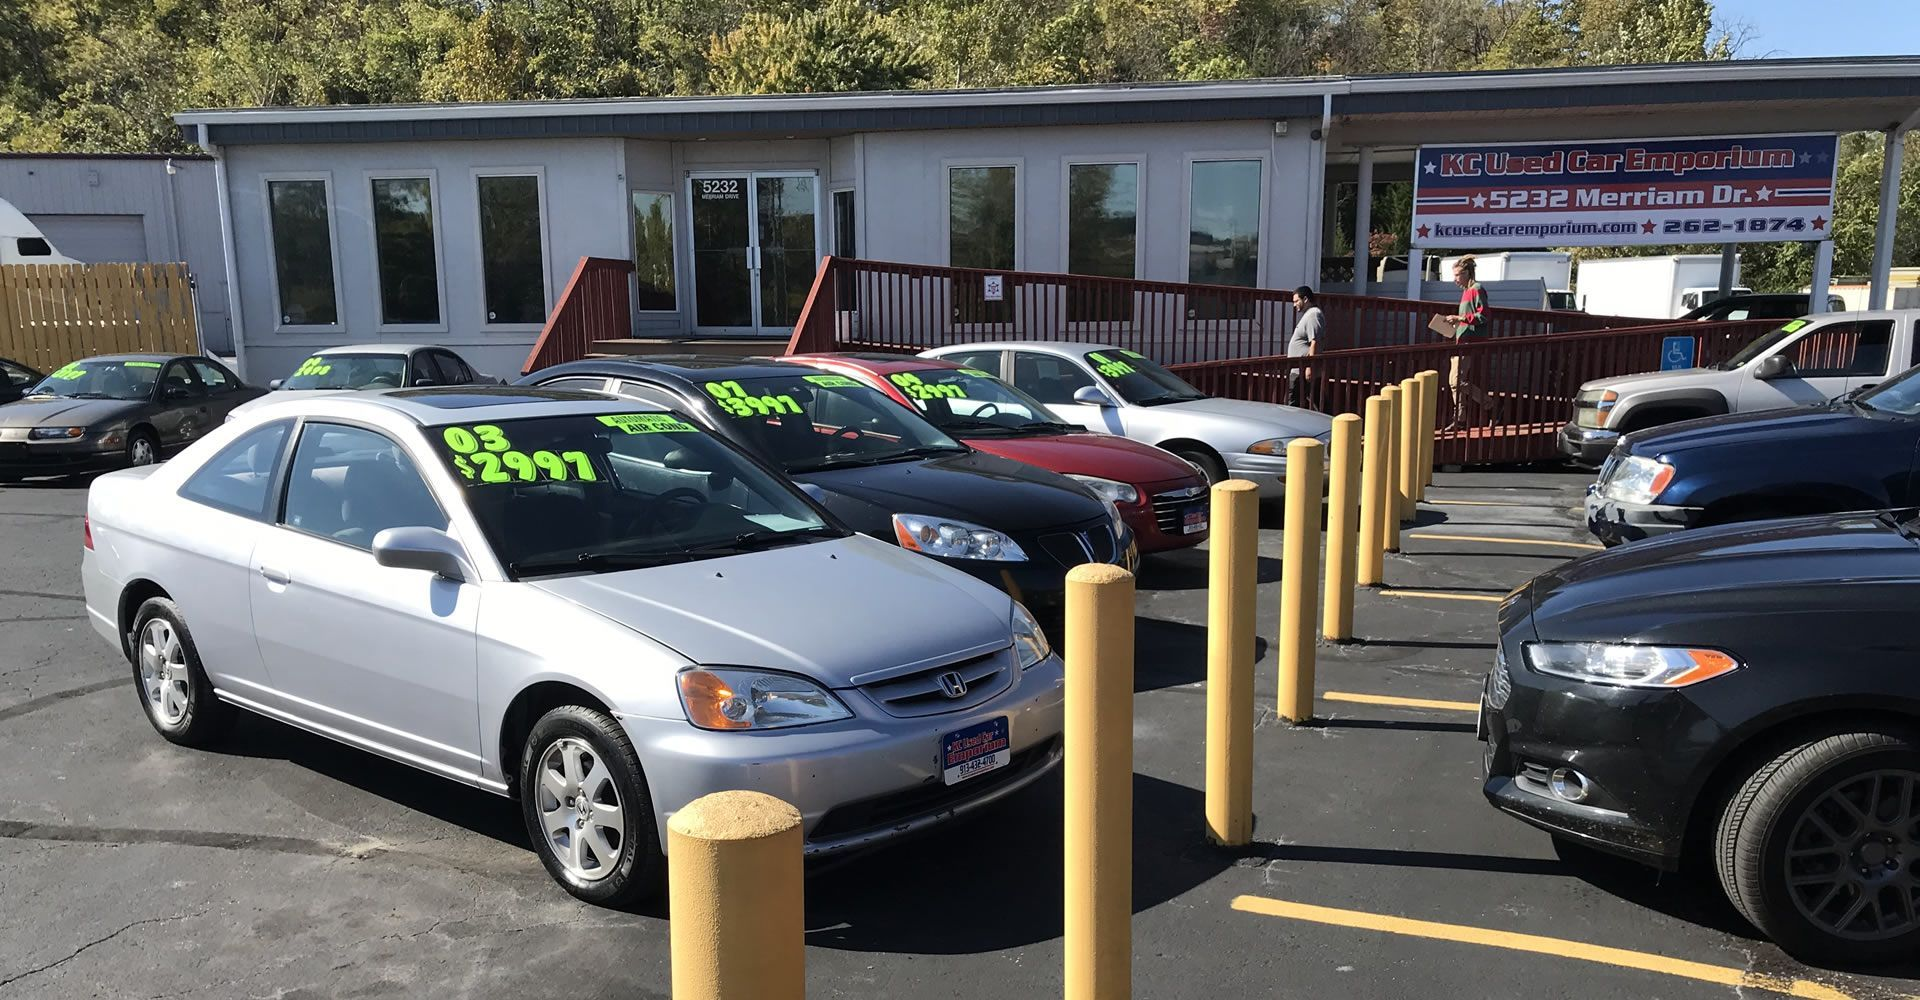 Nice Used Cars for Sale Near Me Beautiful New Used Cars for Sale Near Me Delightful to Be Able to My Personal